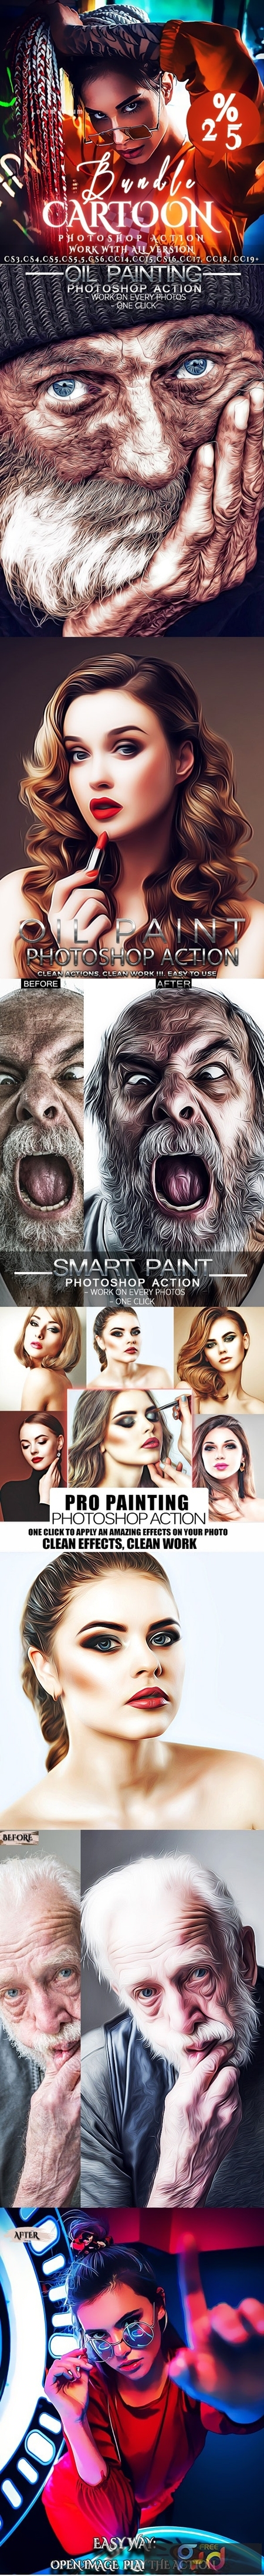 Bundle Cartoon Painting Photoshop Actions 26075116 1